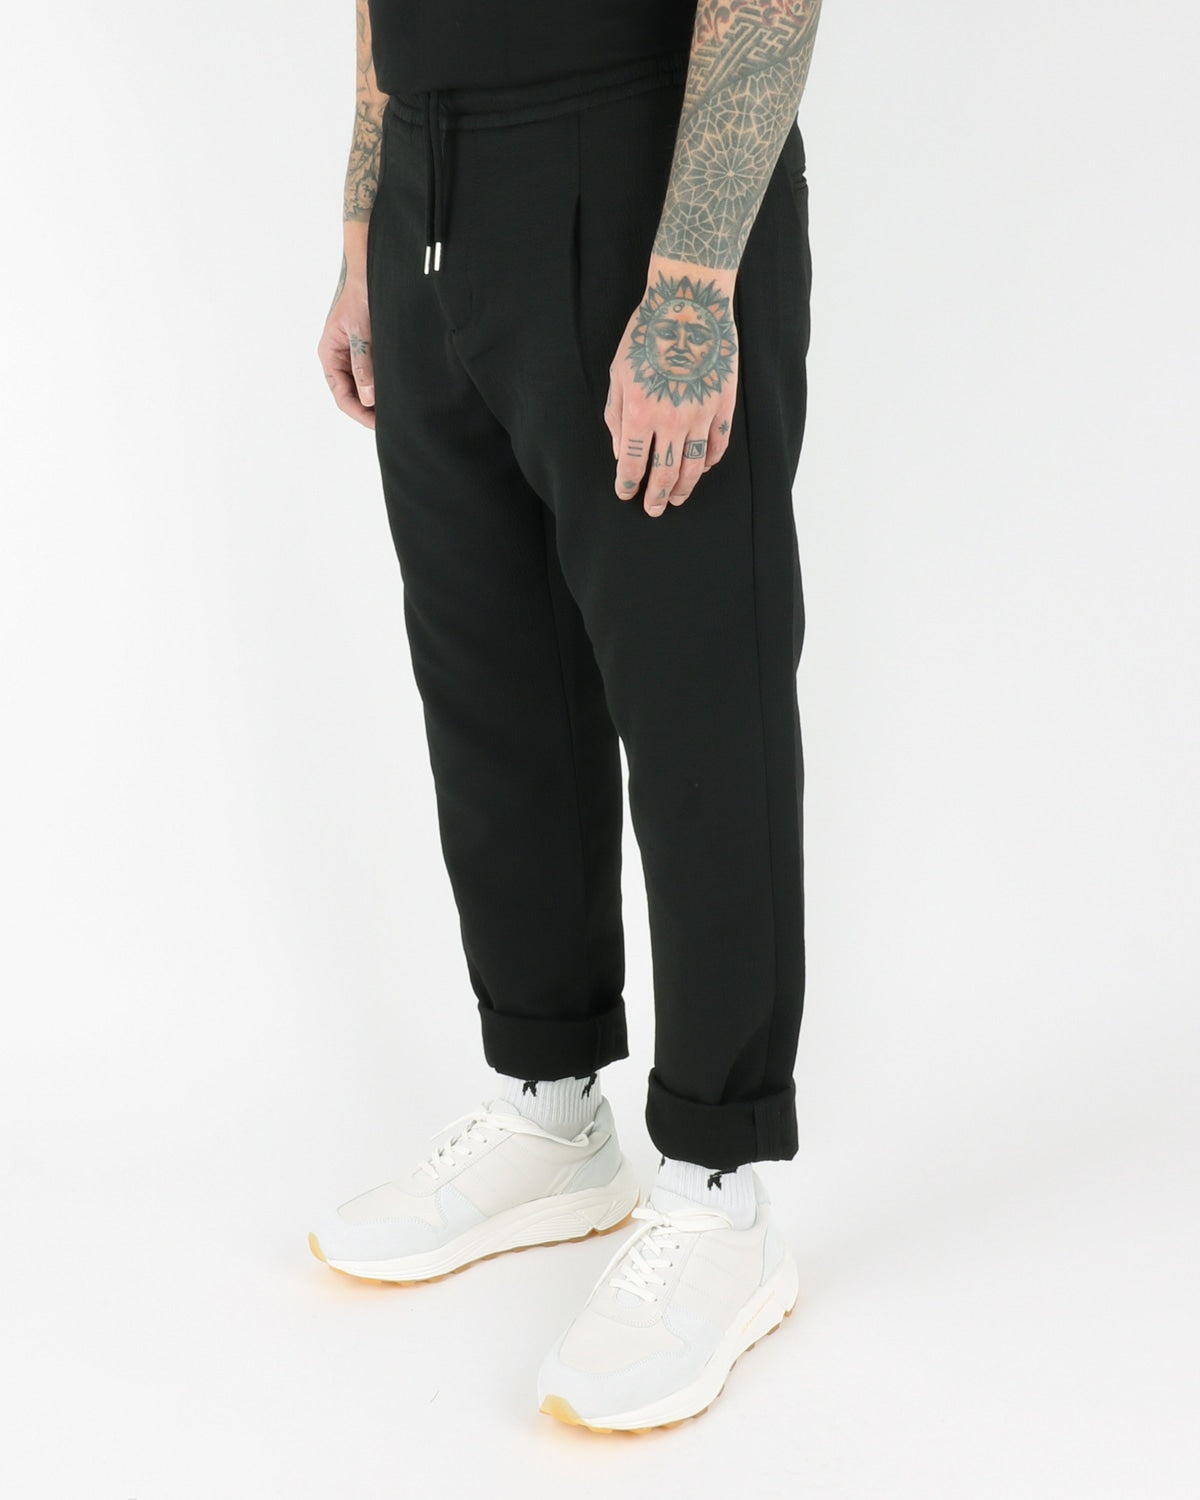 soulland_pino pants_black_view_2_3